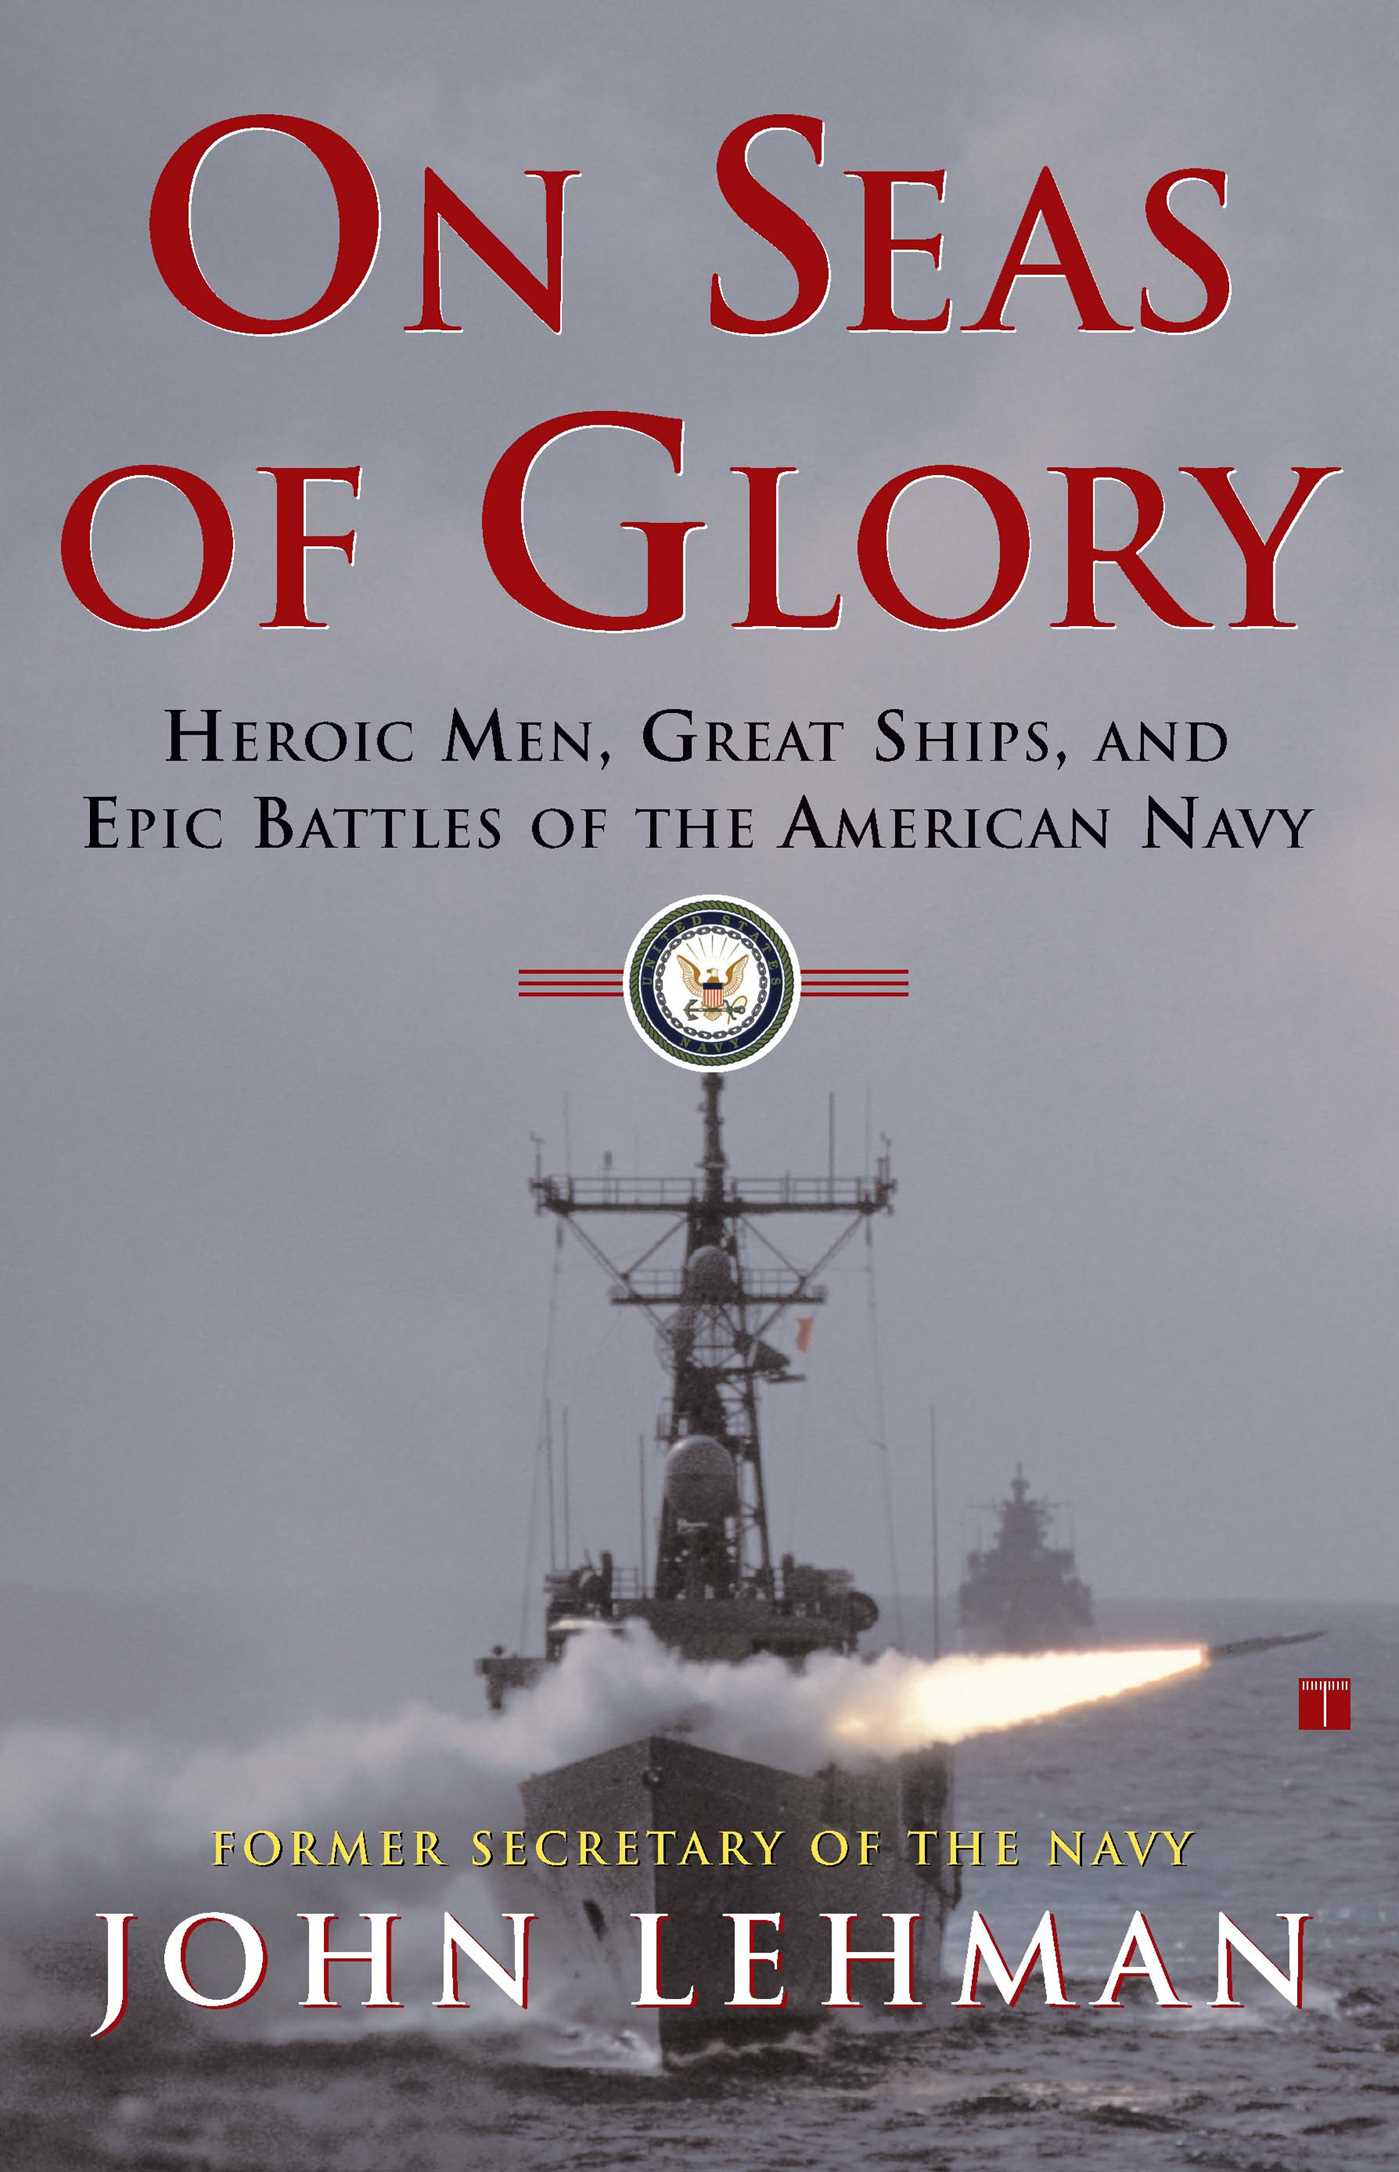 On seas of glory 9780684871776 hr